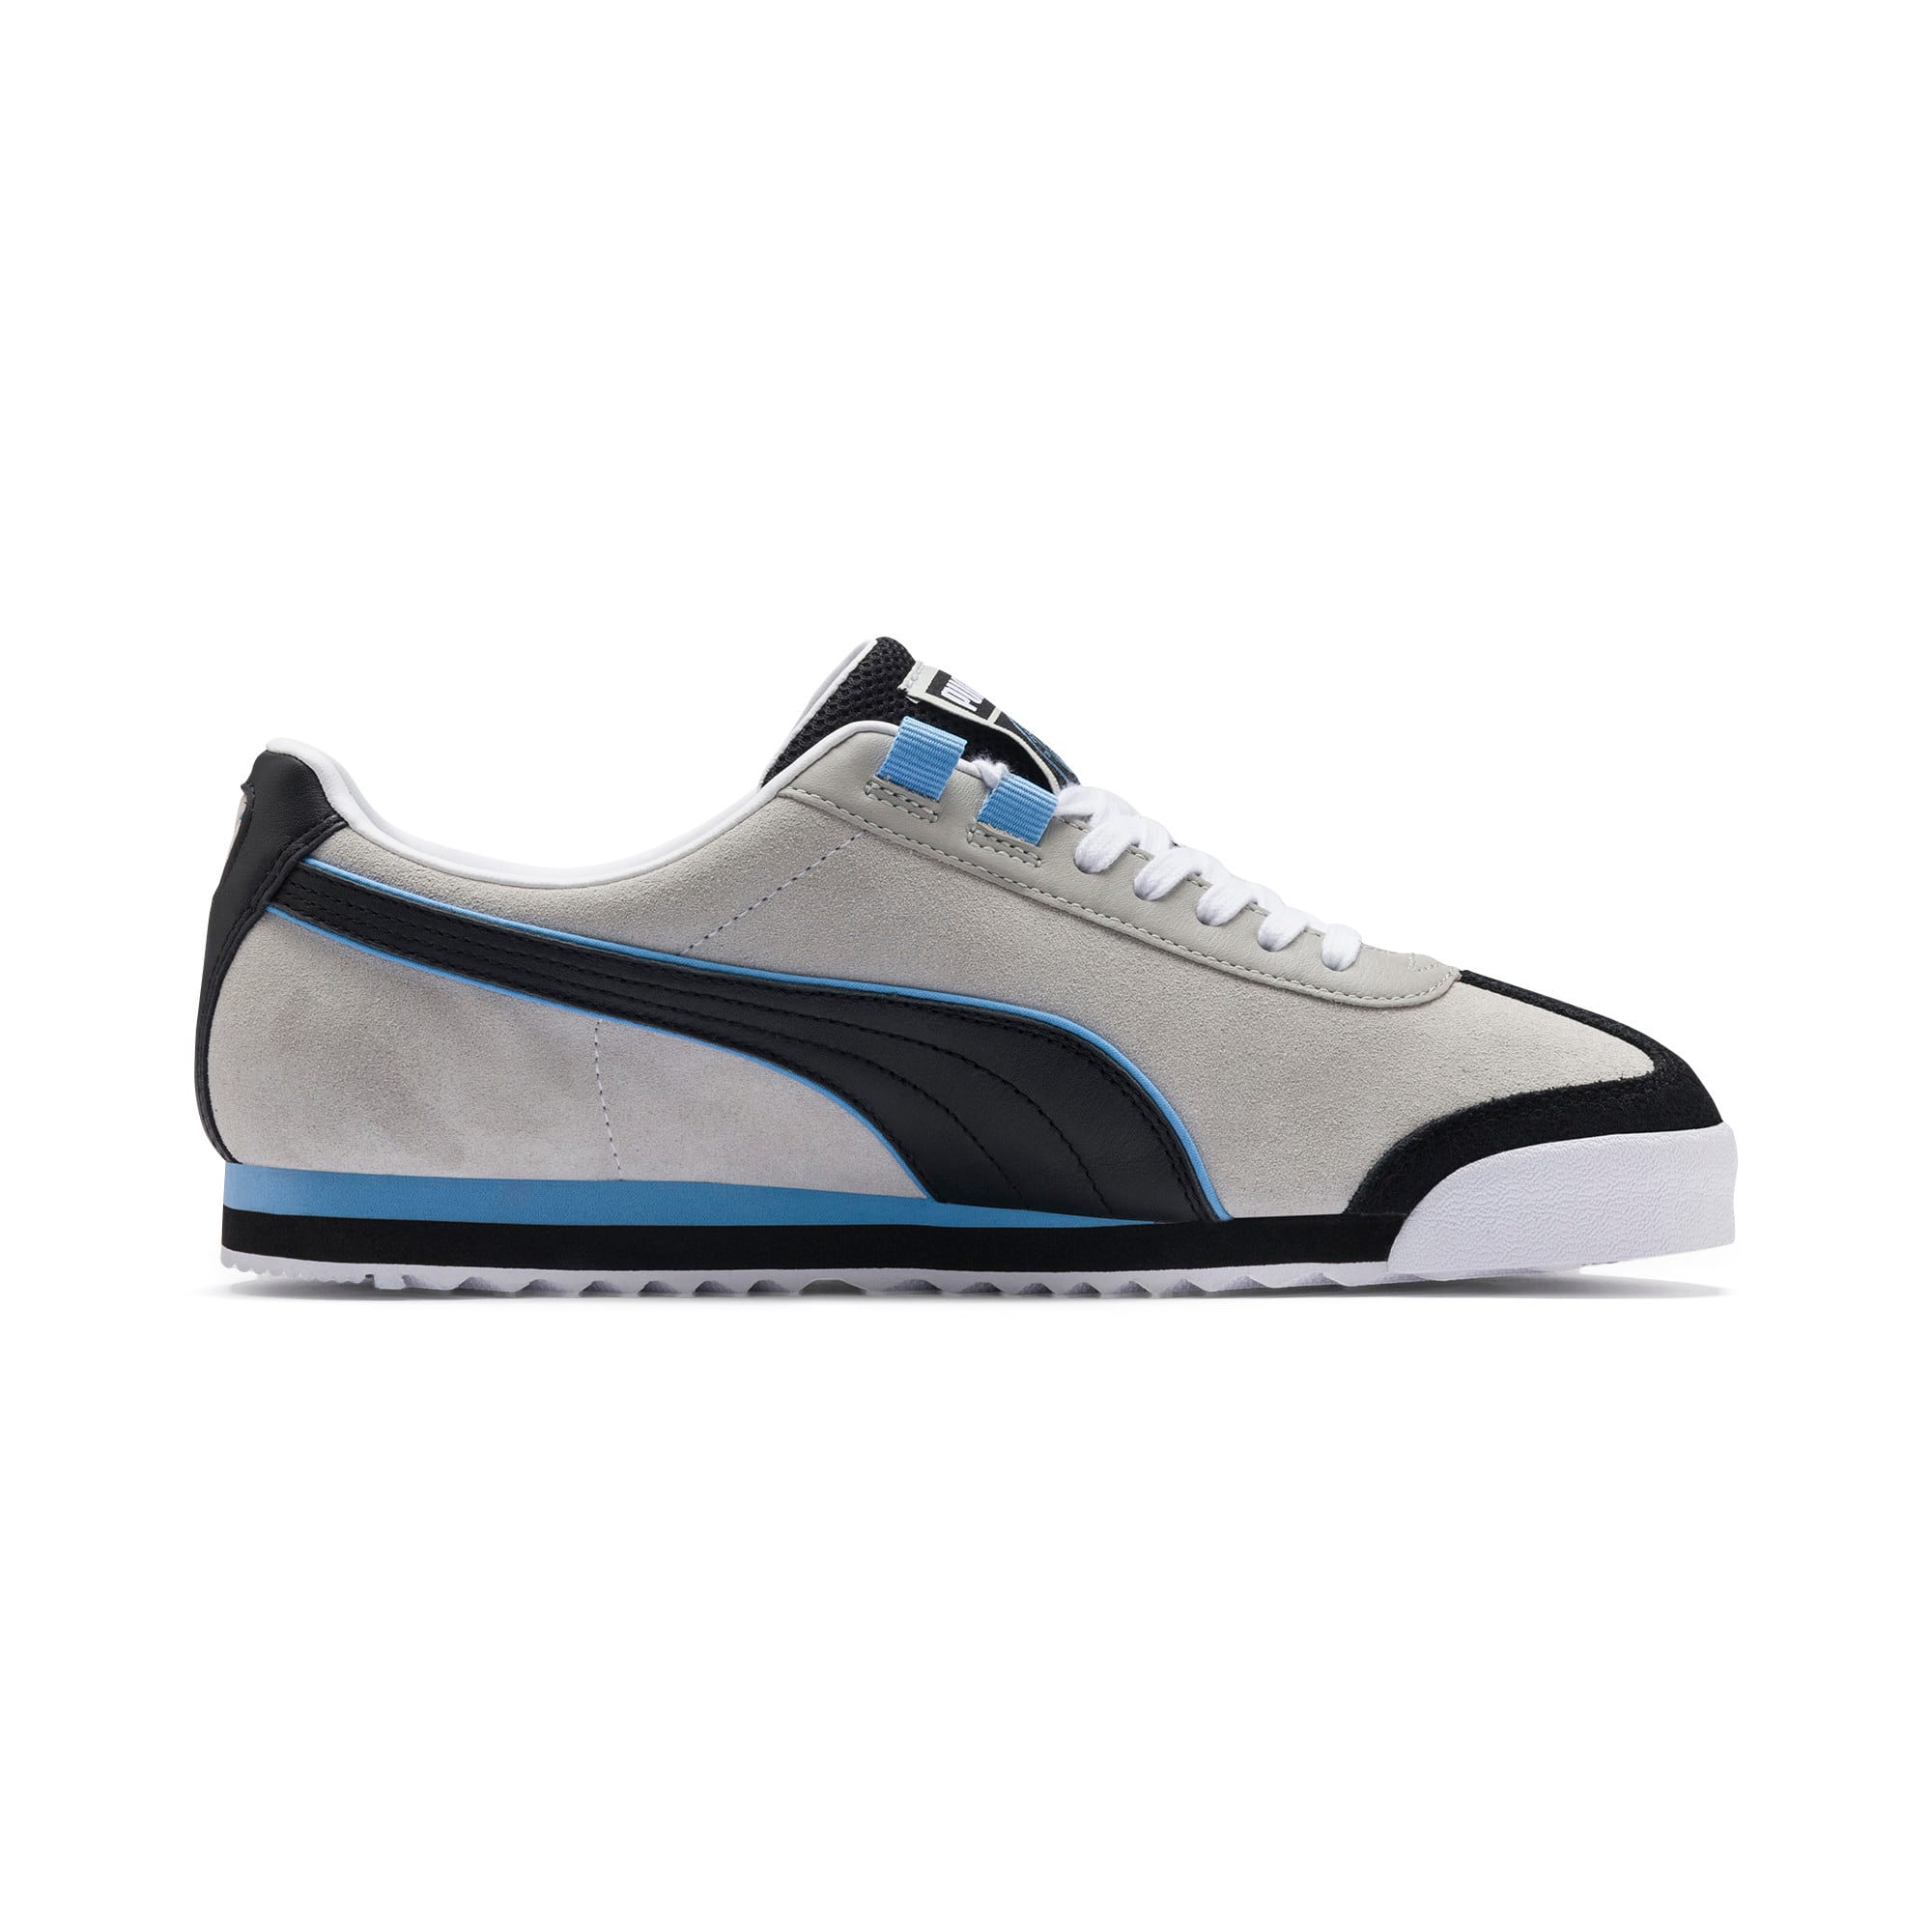 Thumbnail 5 of Roma x Manchester City Trainers, Gray Violet-Team Light Blue, medium